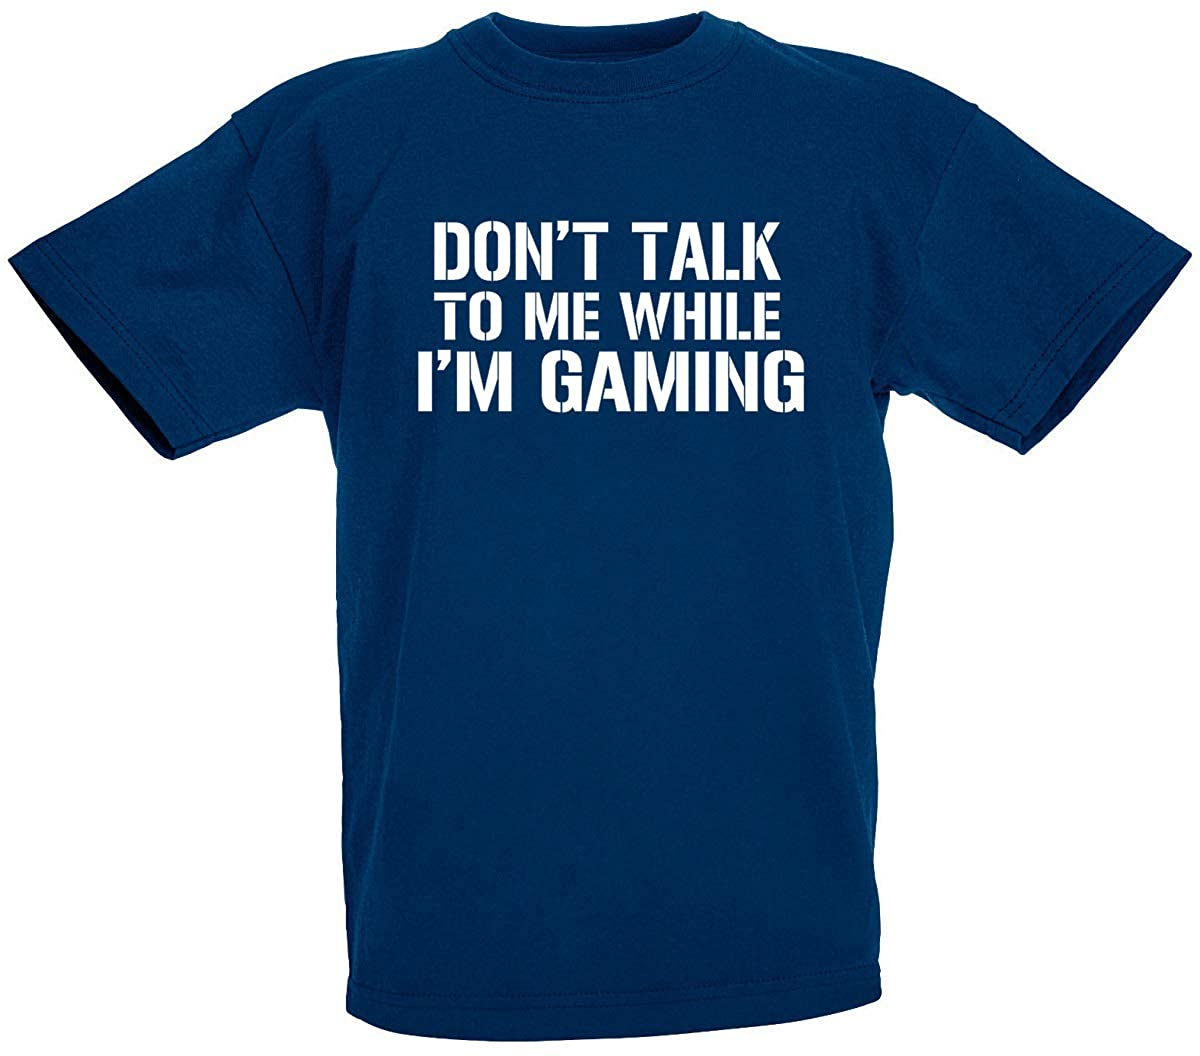 loltops Don't Talk to Me While I'm Gaming Novelty T-Shirt Boys, Teens